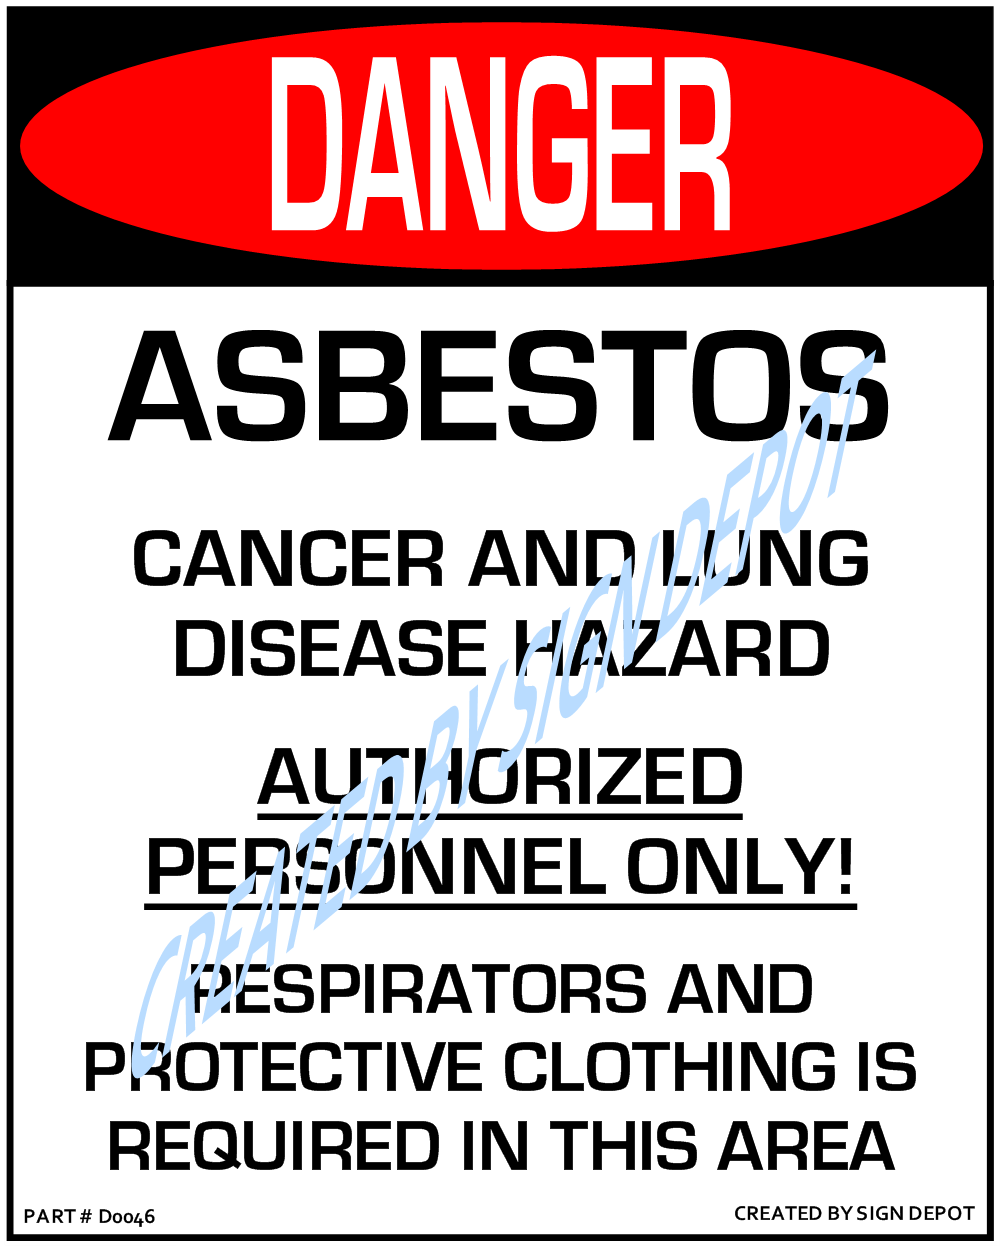 d0046-danger-asbestos-authorized-personnel-only-watermark.png